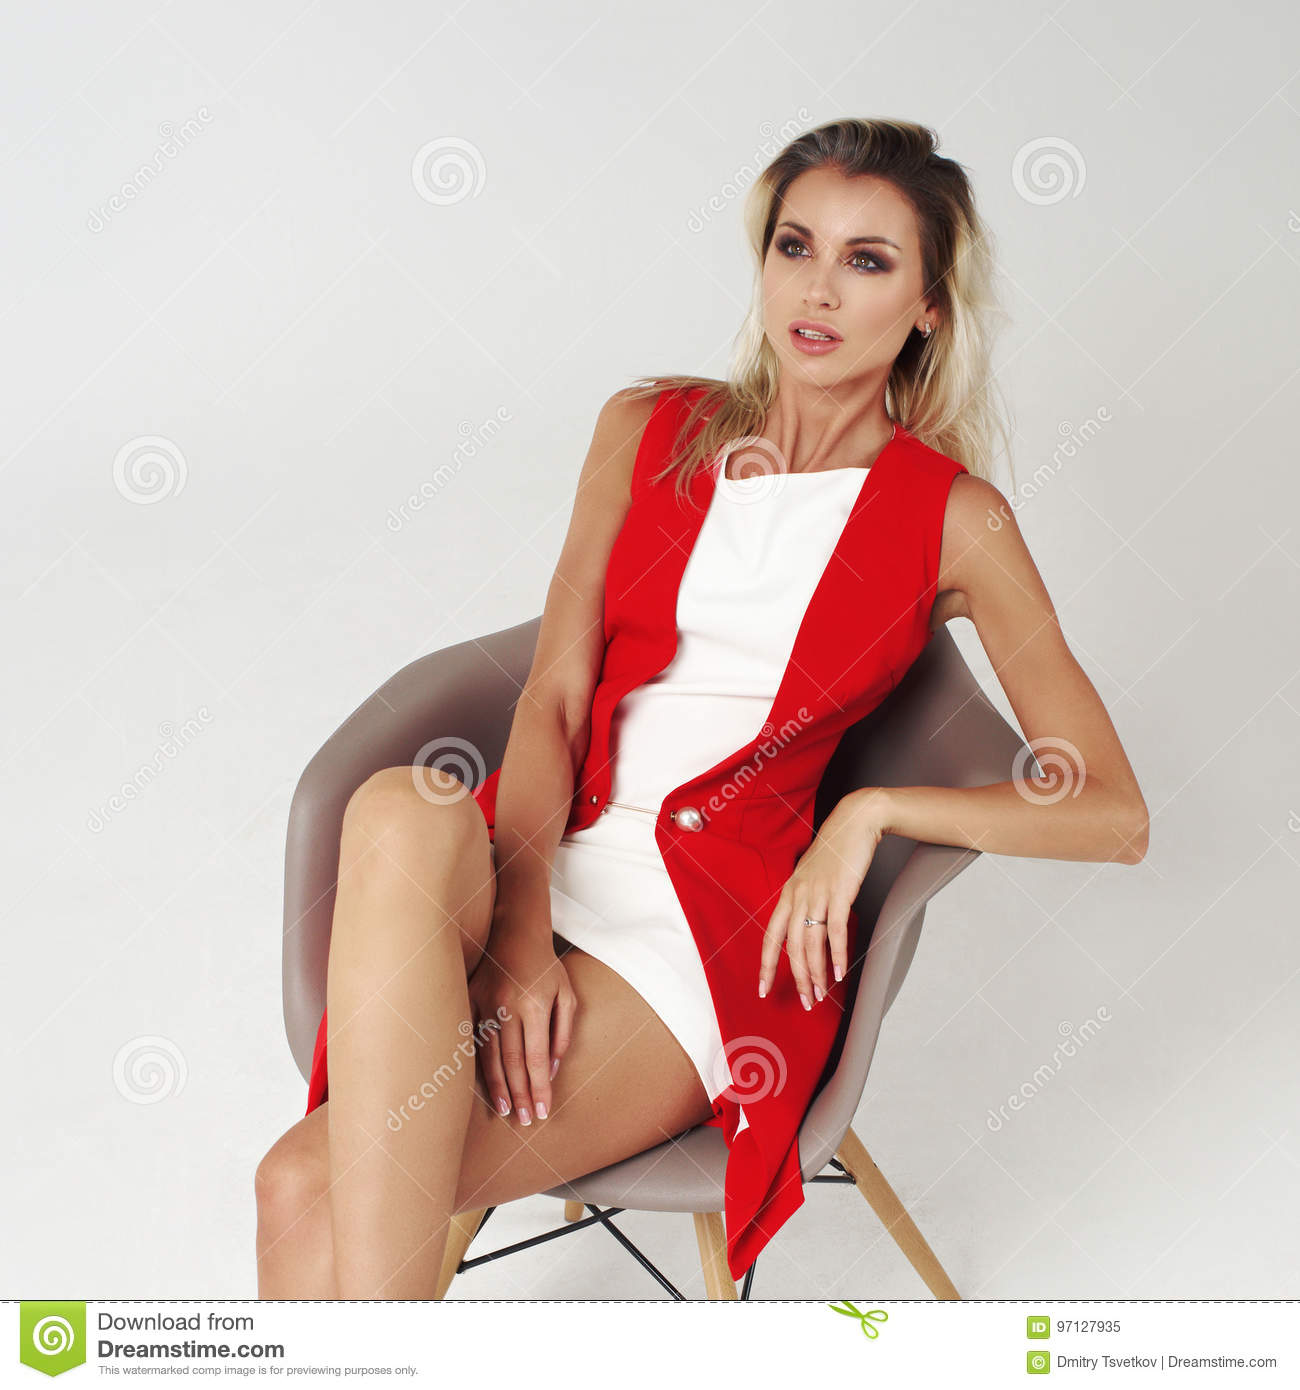 Stylish young woman in white dress and red jacket